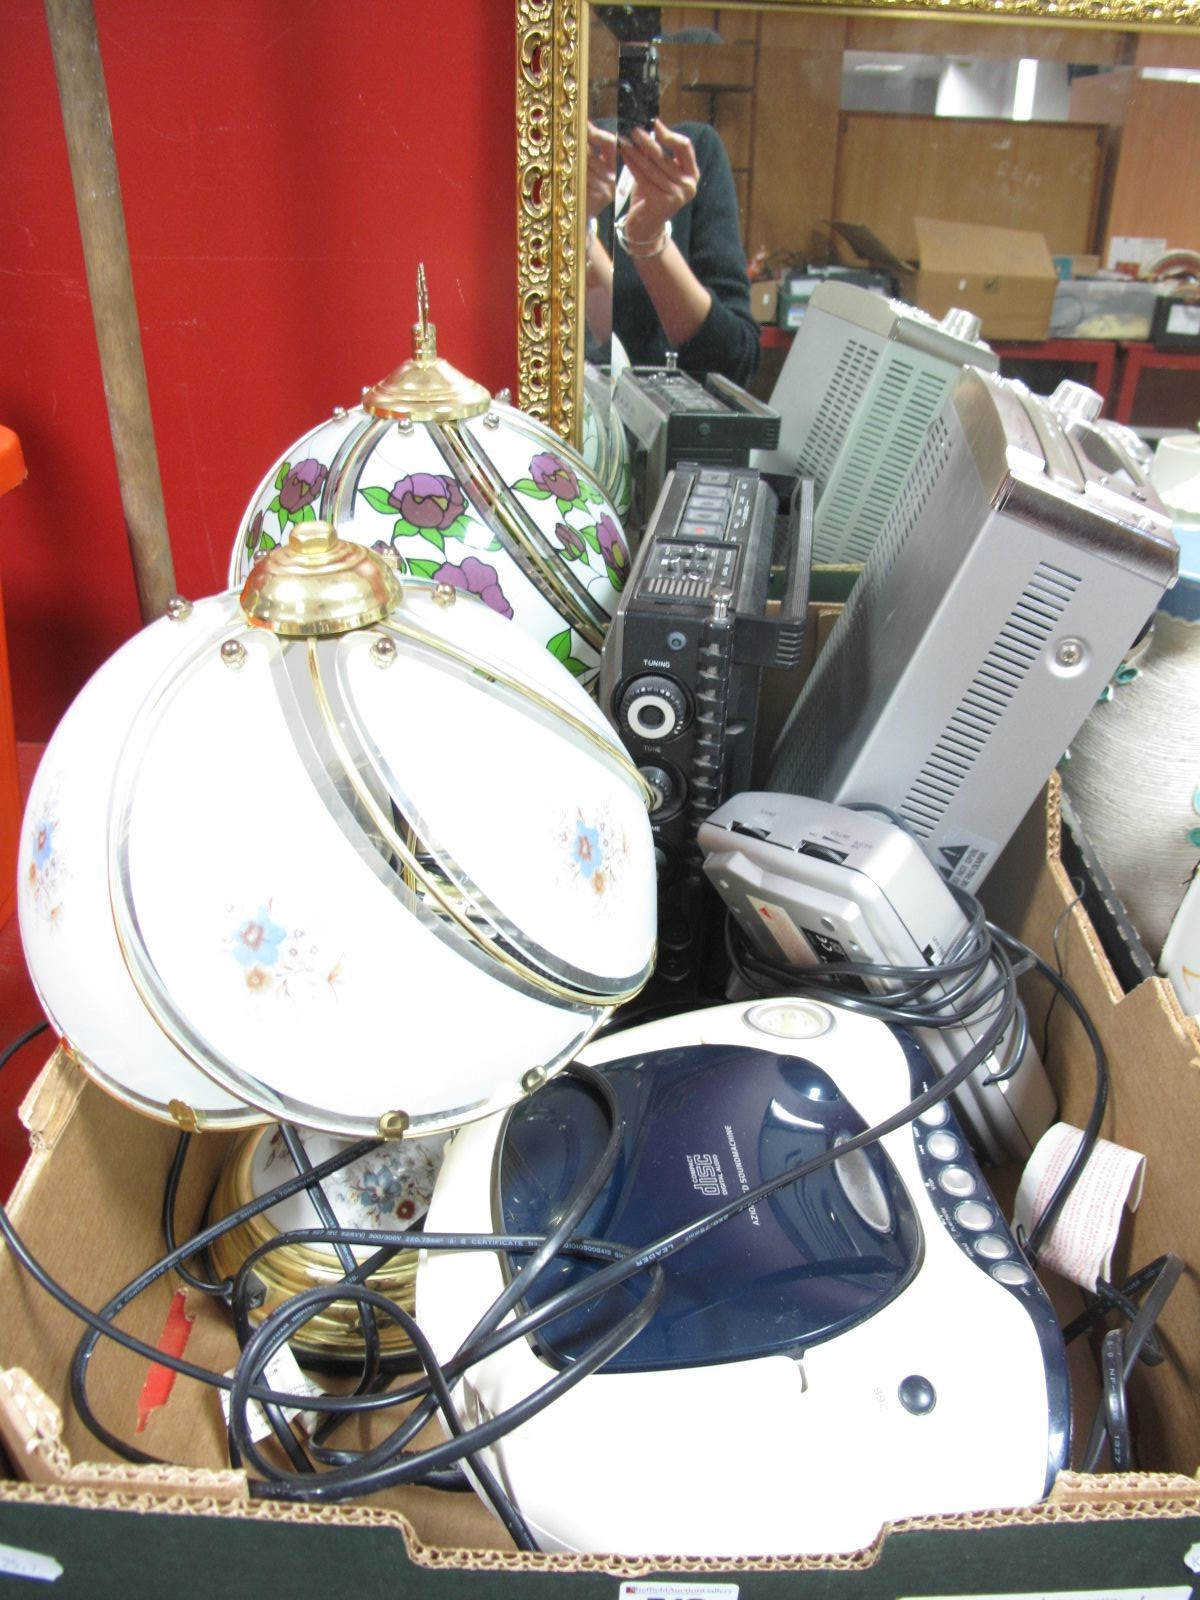 Lot 713 - Denon CD Receiver RCD-M33, Philips compact disc, table lamps, etc:- One Box